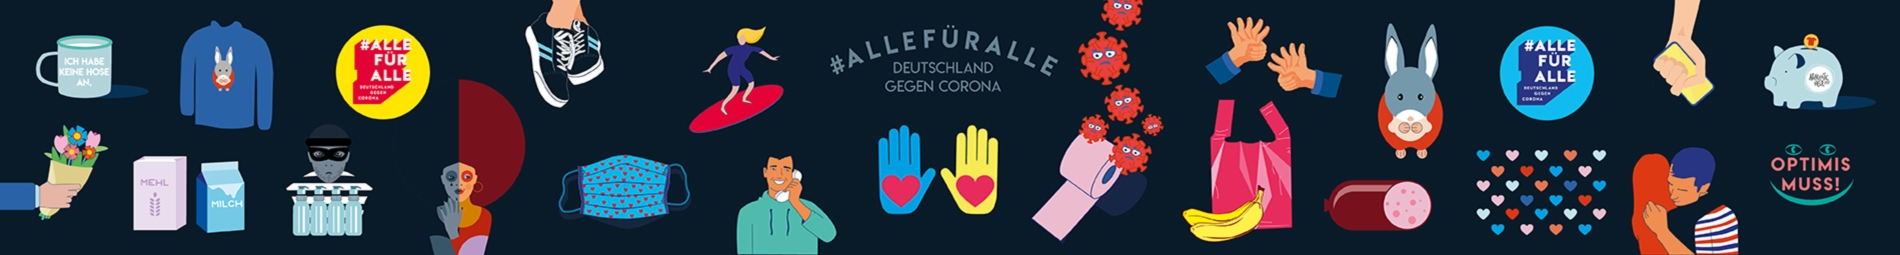 Showroom - allefueralle